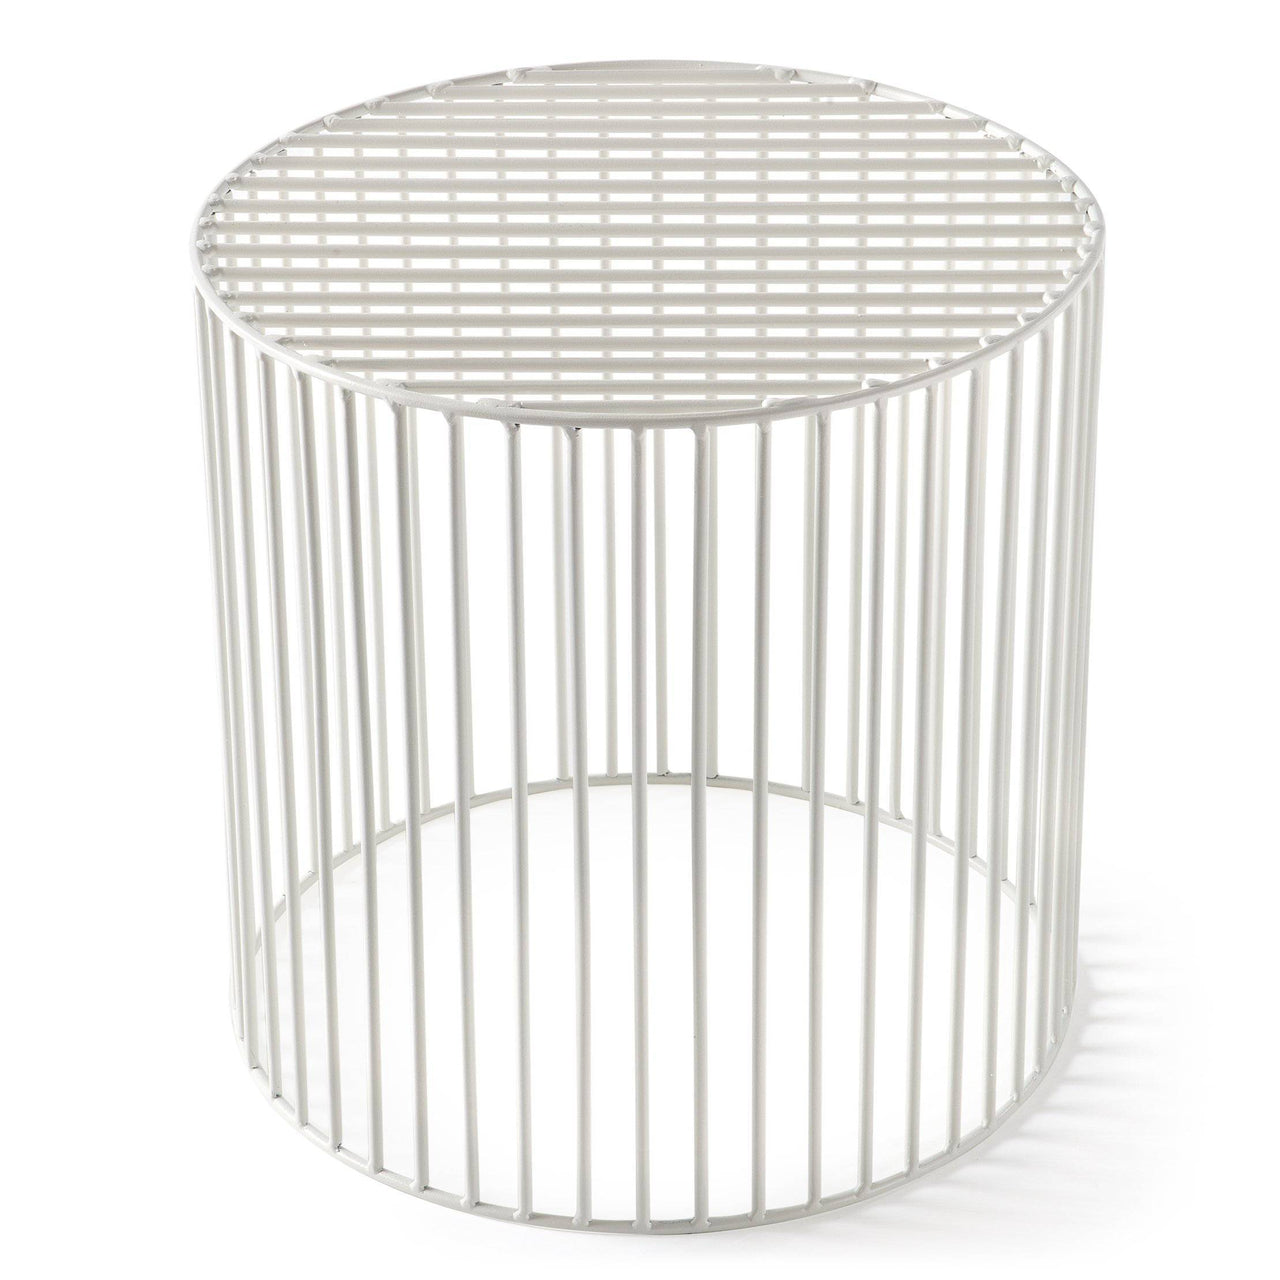 Tamburo Side Table: Small + Signal White